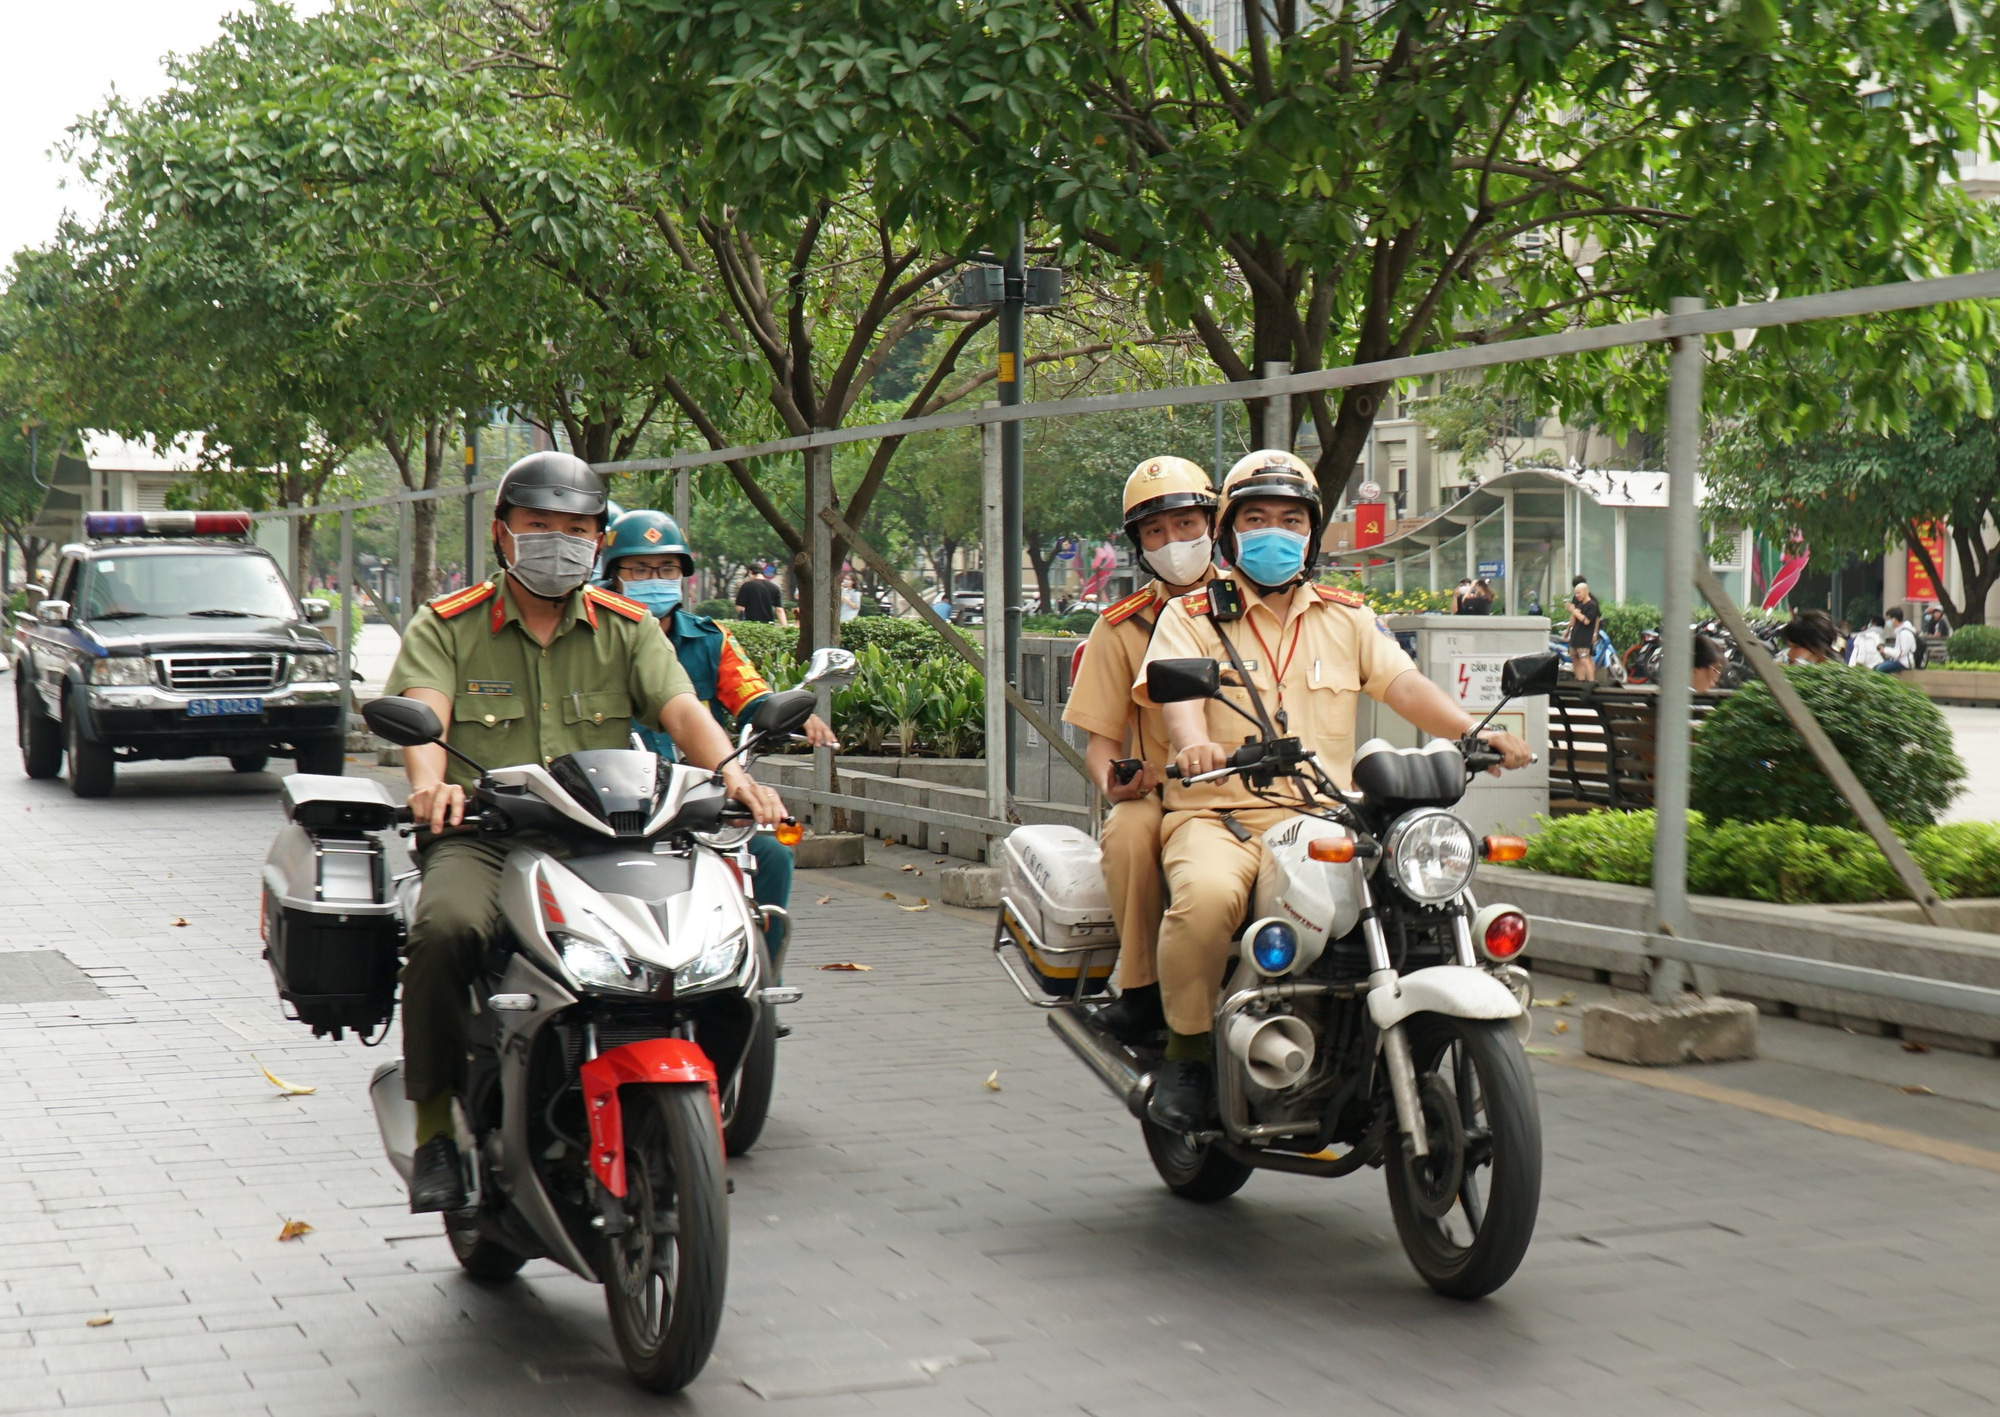 The special motorbike has two cameras on each of its side to scan license plates of vehicles. Photo: D. T. / Tuoi Tre